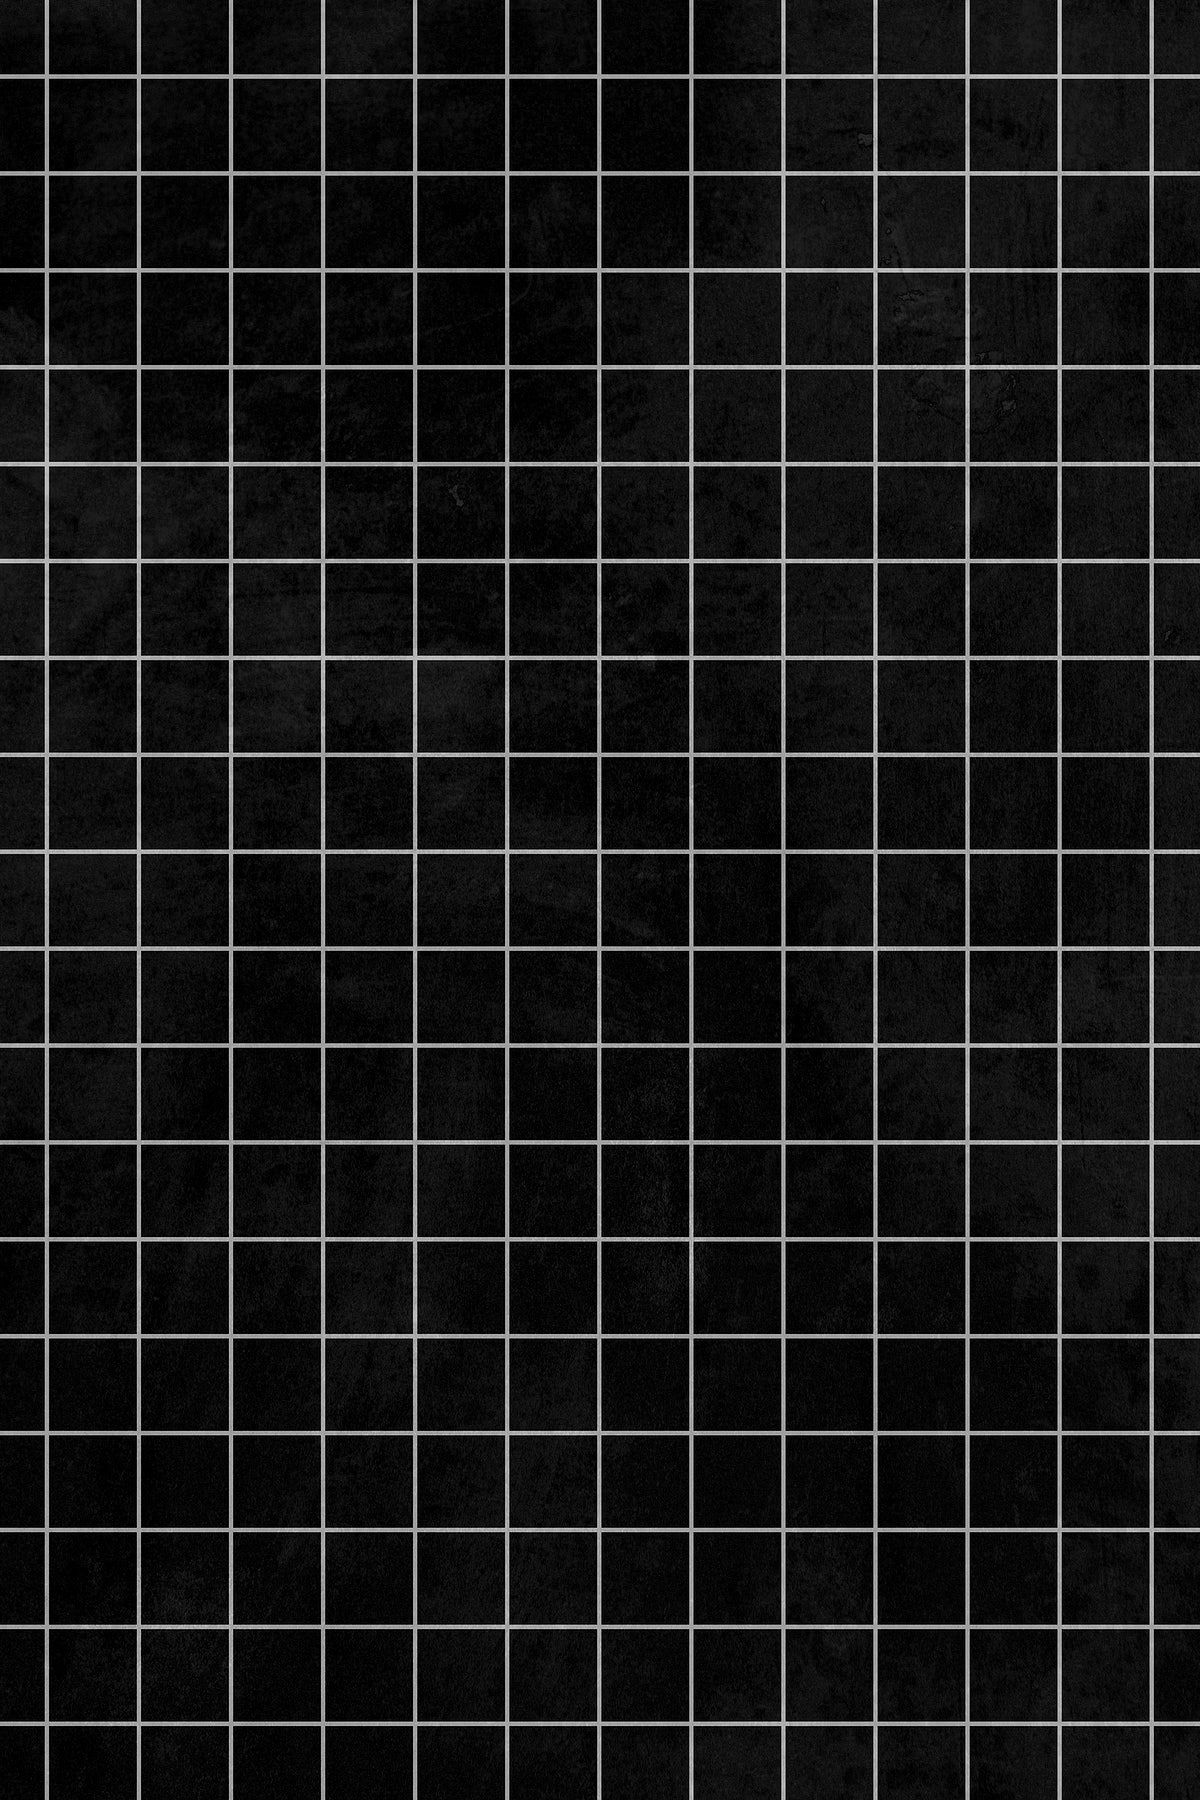 Download Premium Illustration Of Gray Grid Line Pattern On A Black Background By In 2021 Black Background Wallpaper White Pattern Background Black And White Background Aesthetic black grid wallpaper